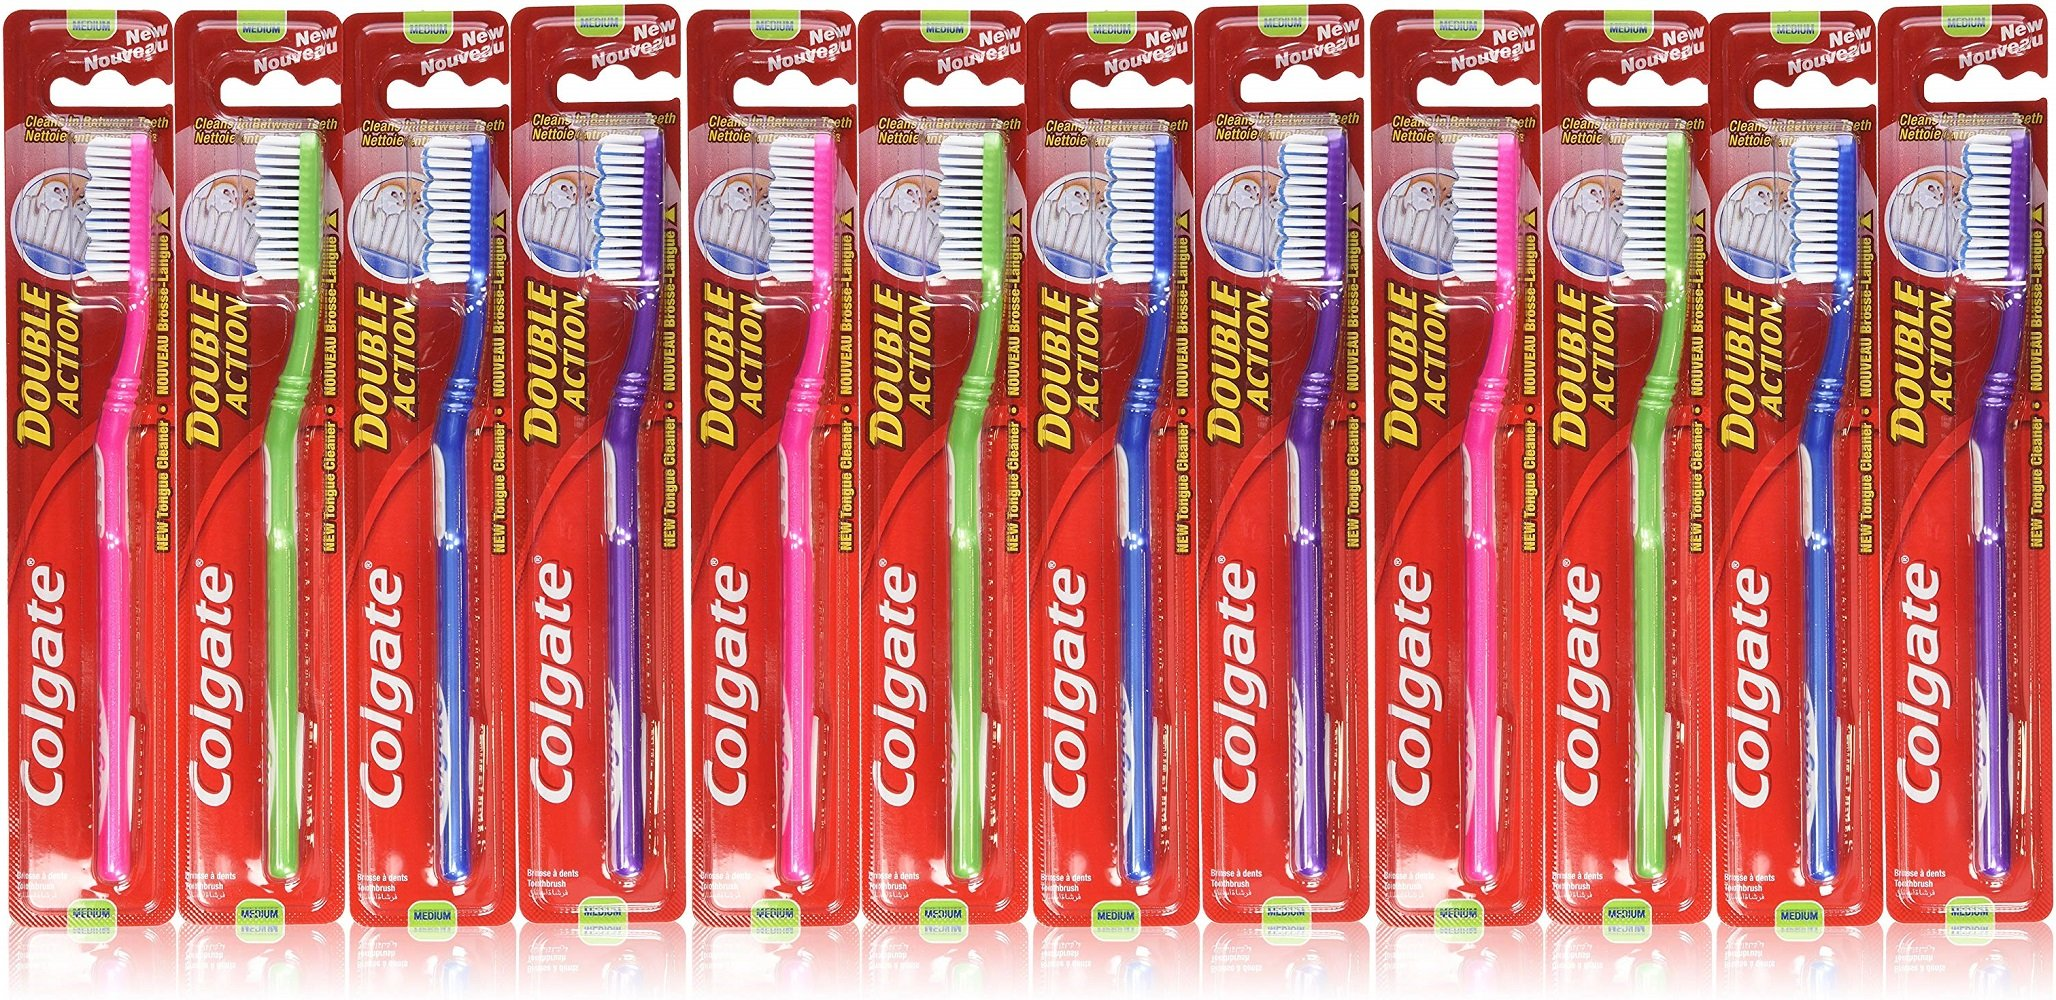 Colgate Toothbrush Double Action, Medium (Pack of 12)